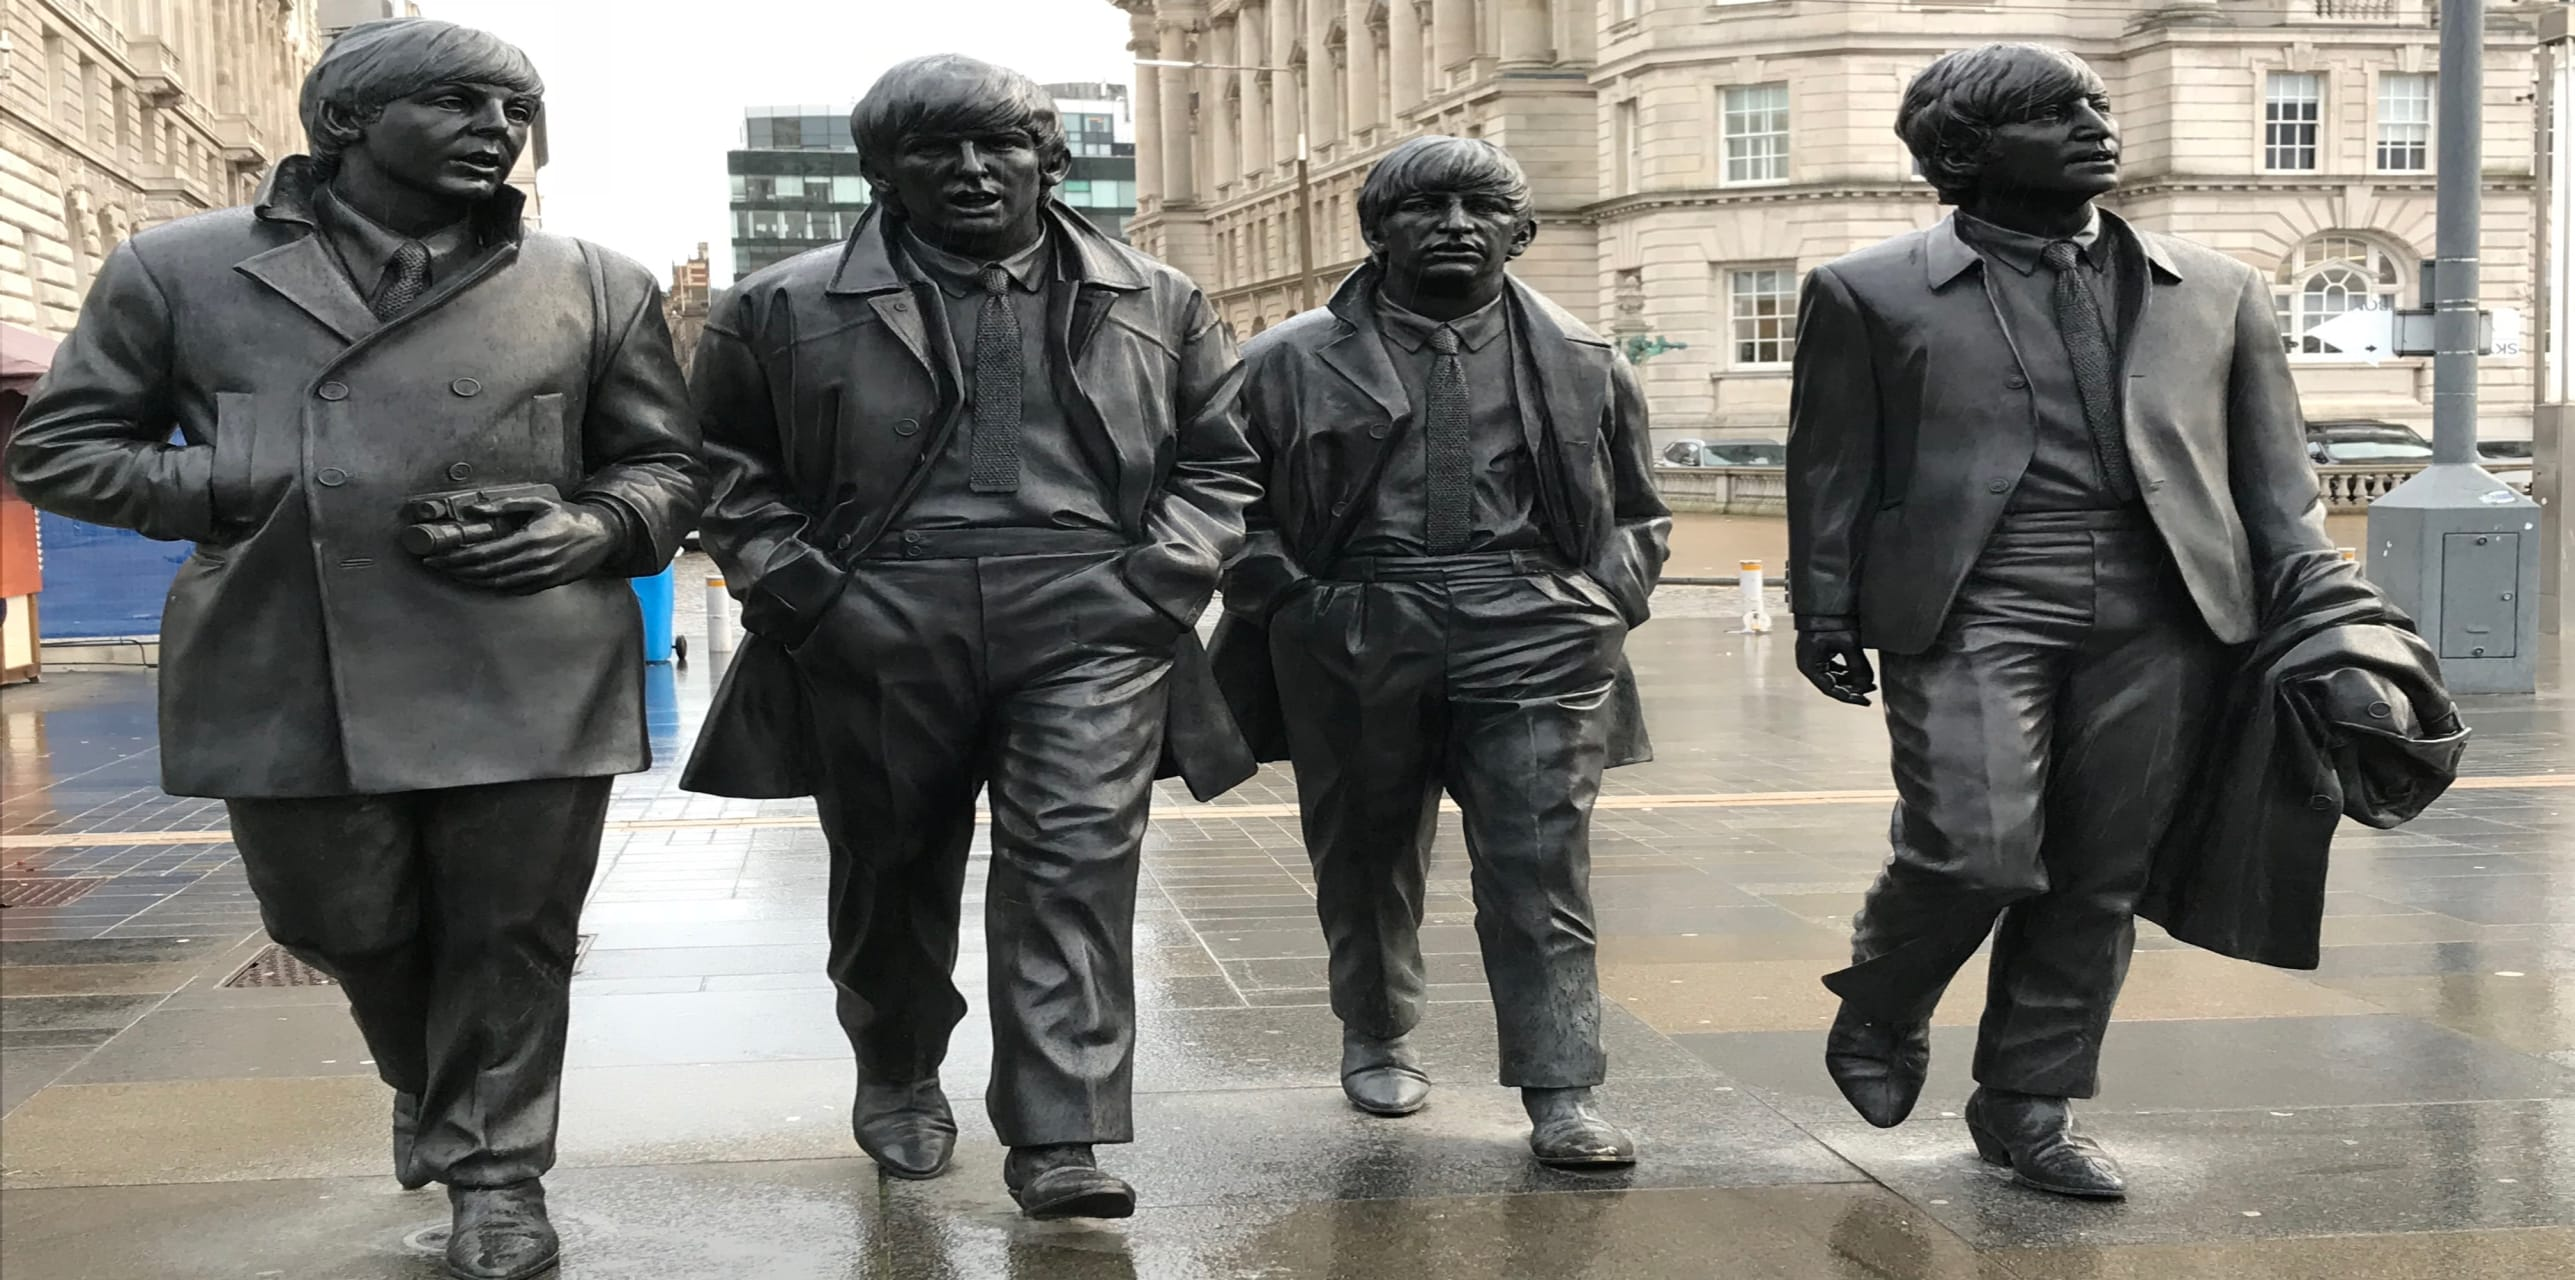 Liverpool - A walk with The Beatles - Ferry Across the Mersey, Albert Dock and The Cavern Club